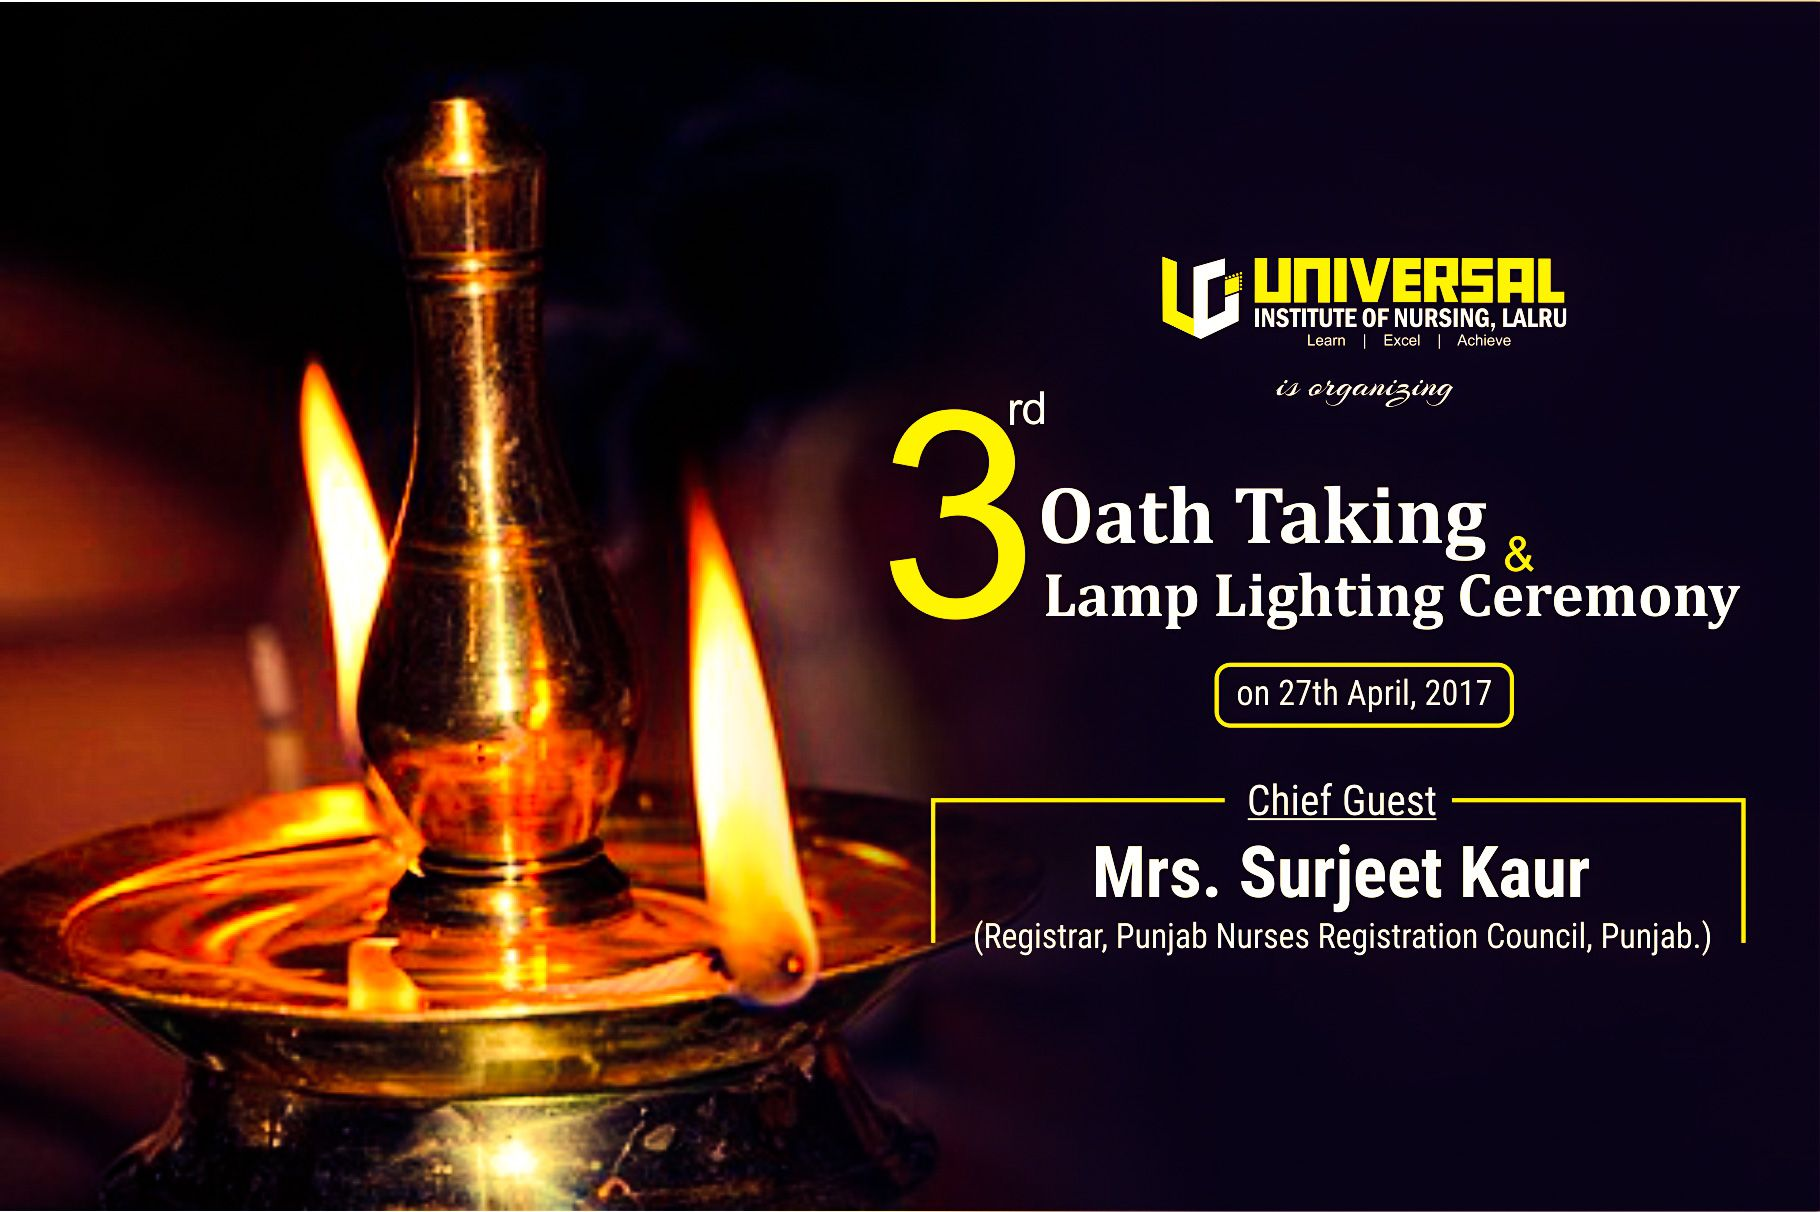 Universal Institute of Nursing is organizing 3rd Oath Taking  for Lighting Lamp Ceremony  173lyp